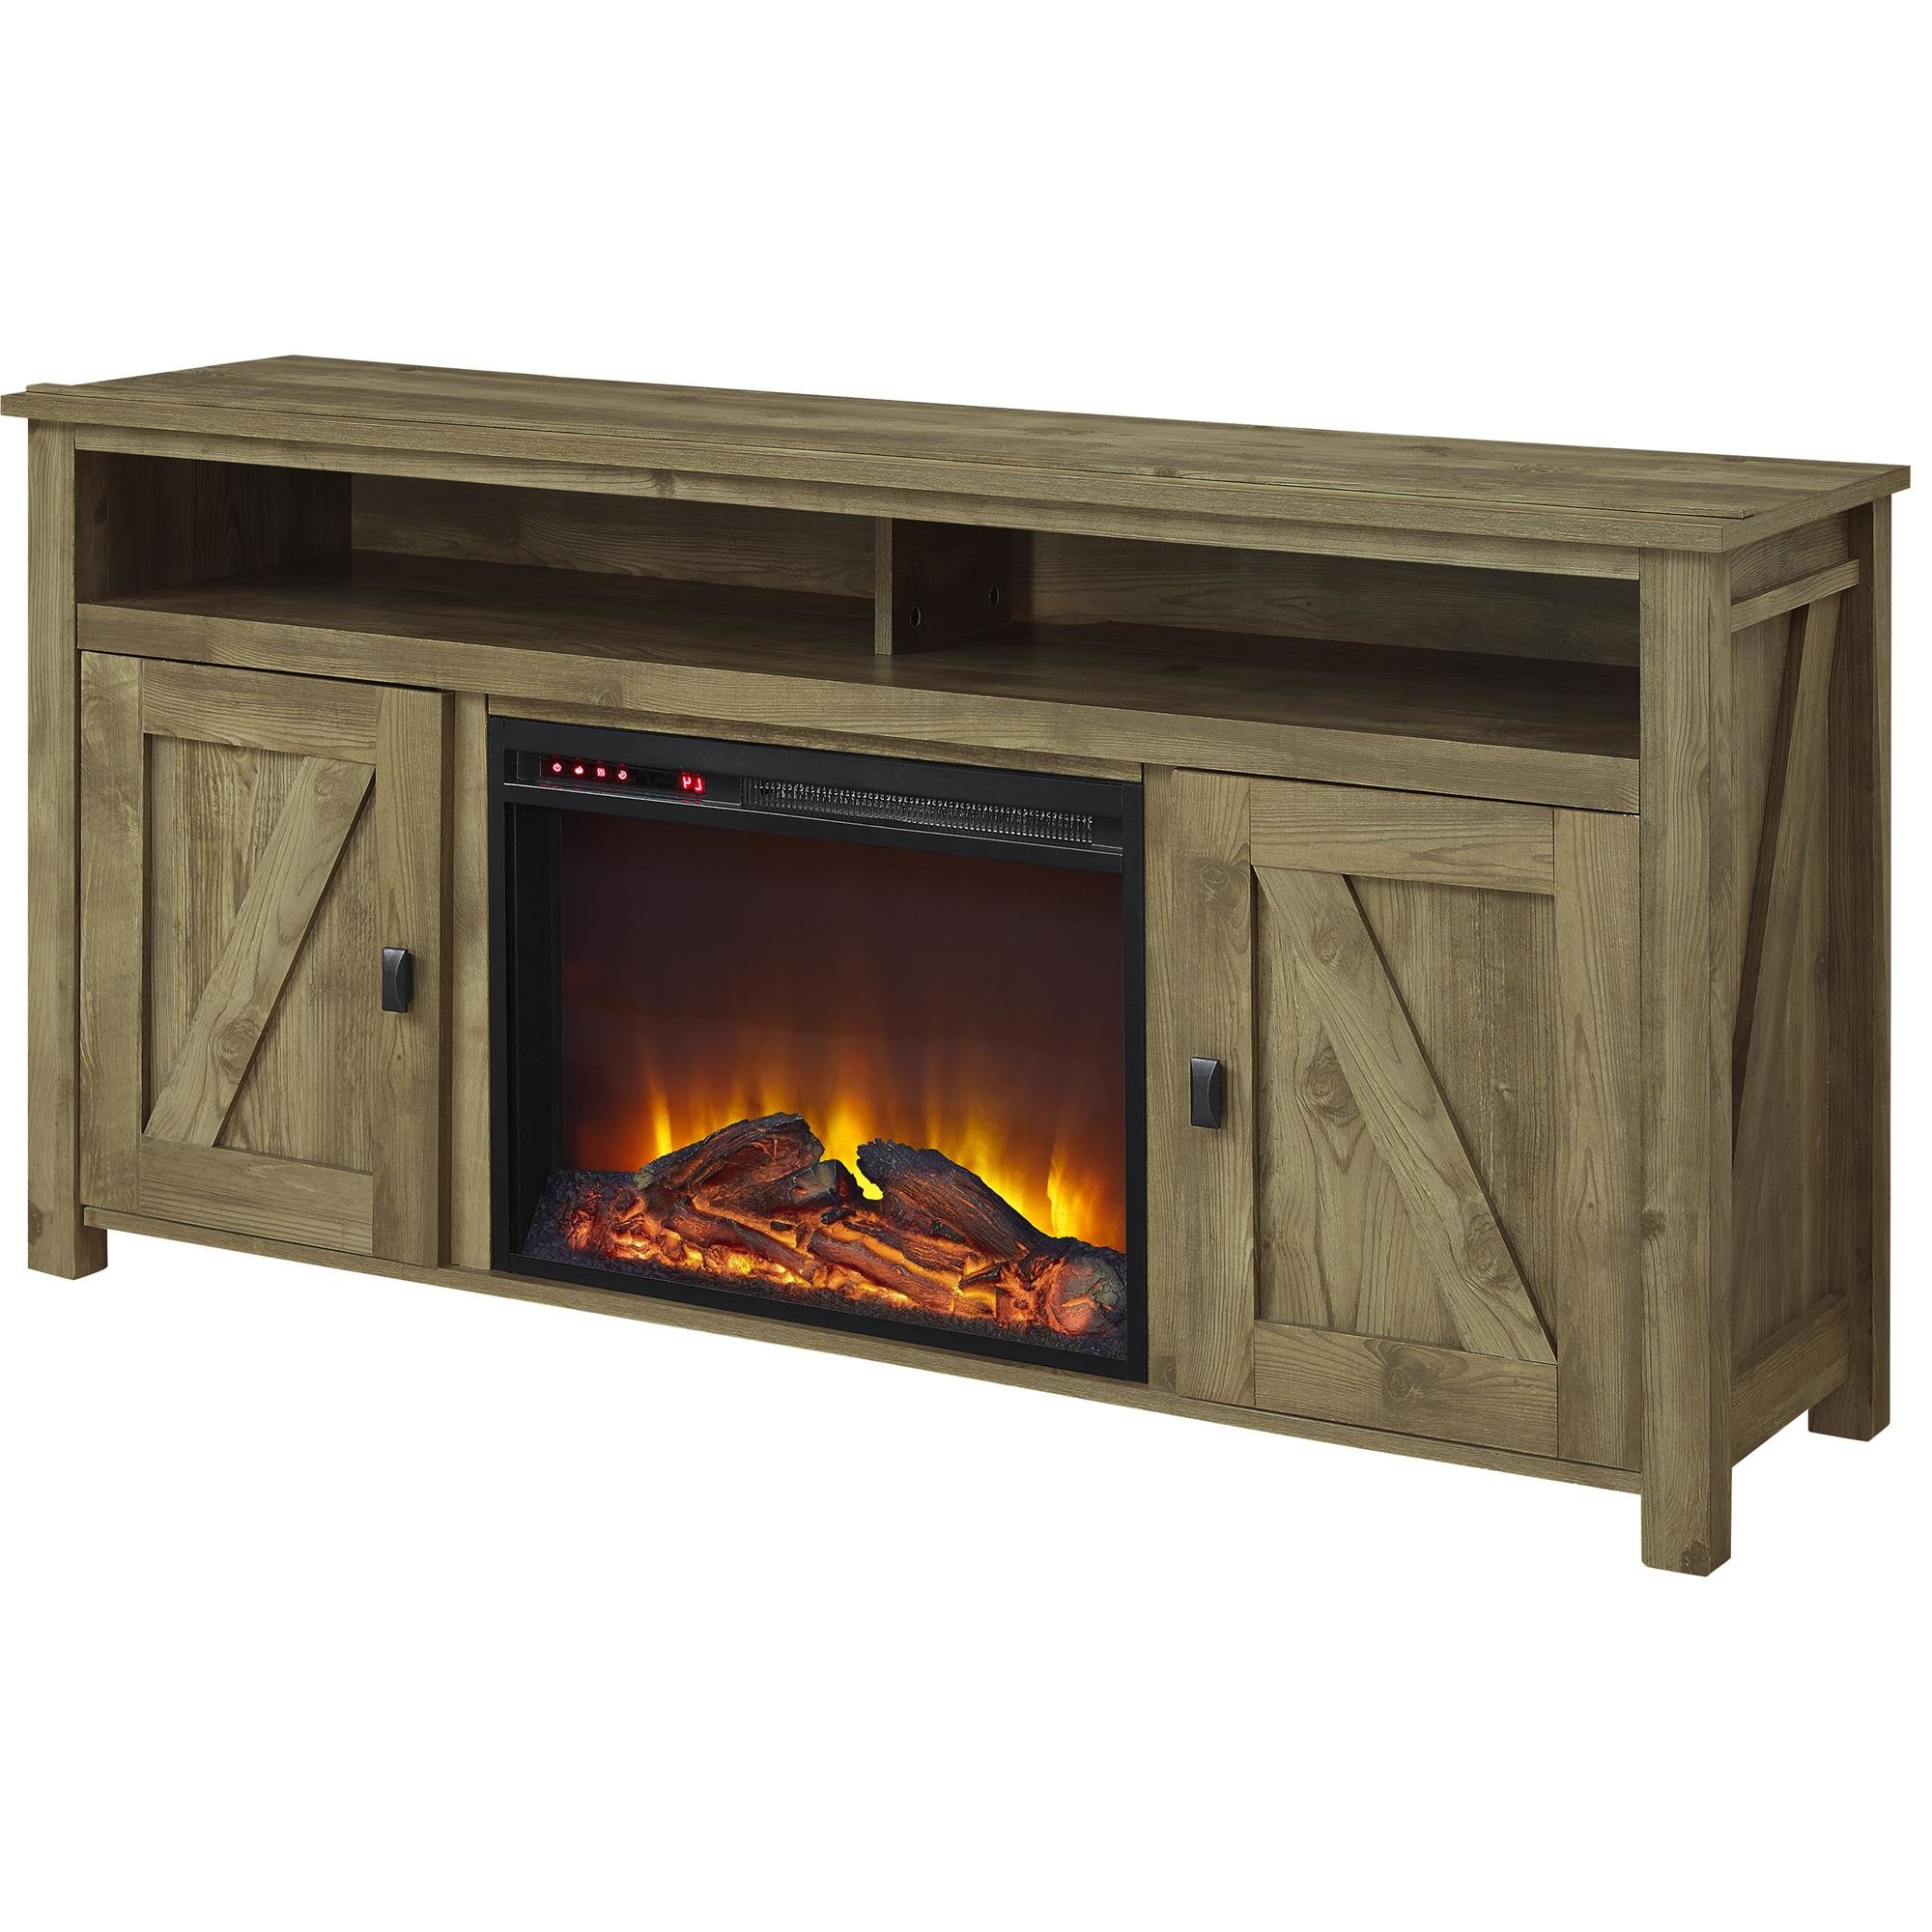 """Whittier Tv Stand For Tvs Up To 60"""" With Fireplace & Reviews 